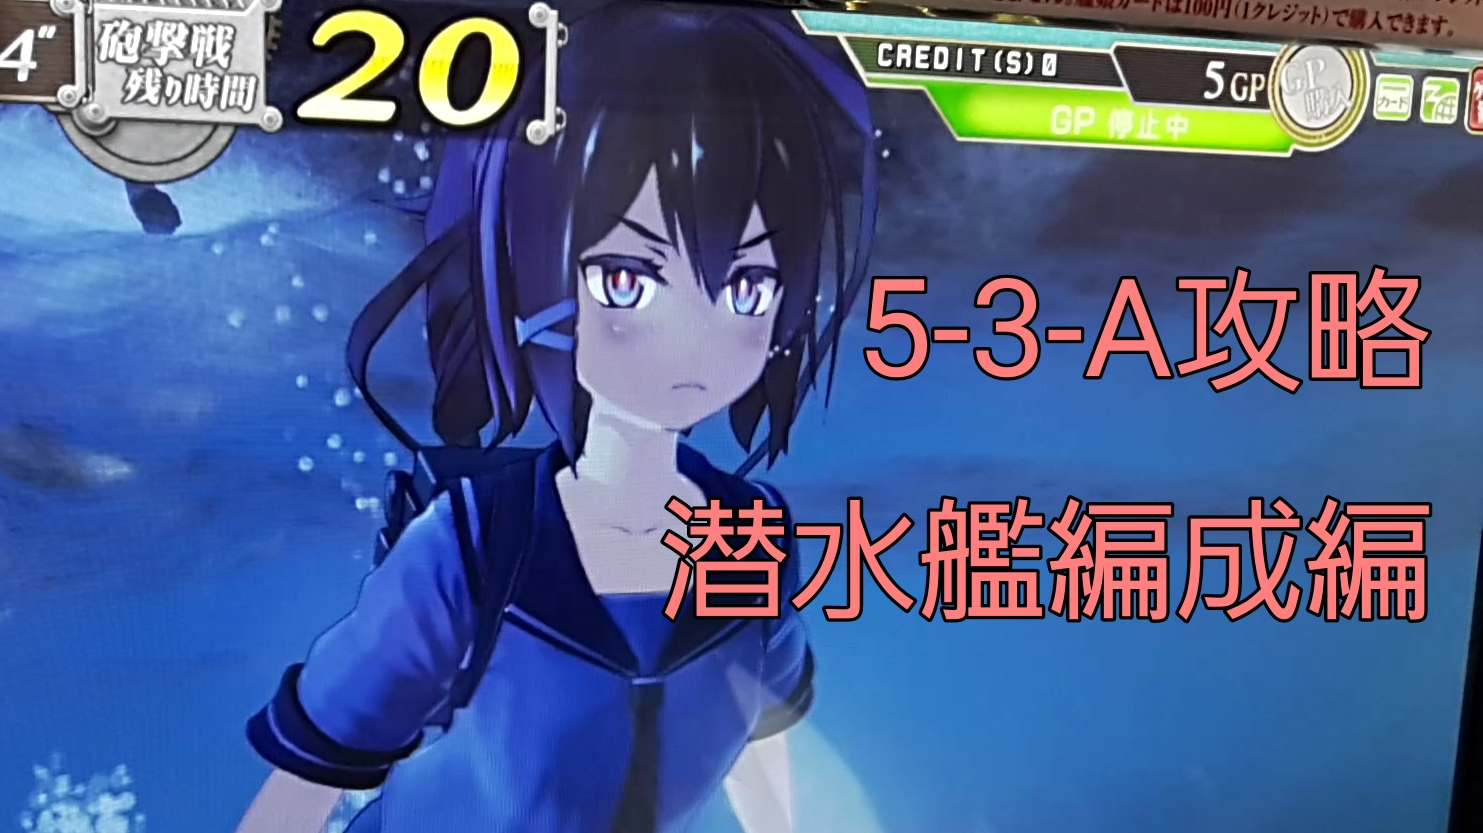 【AC】第一次サーモン沖海戦(5-3-A) 潜水2雷巡2重巡2 プレイ動画